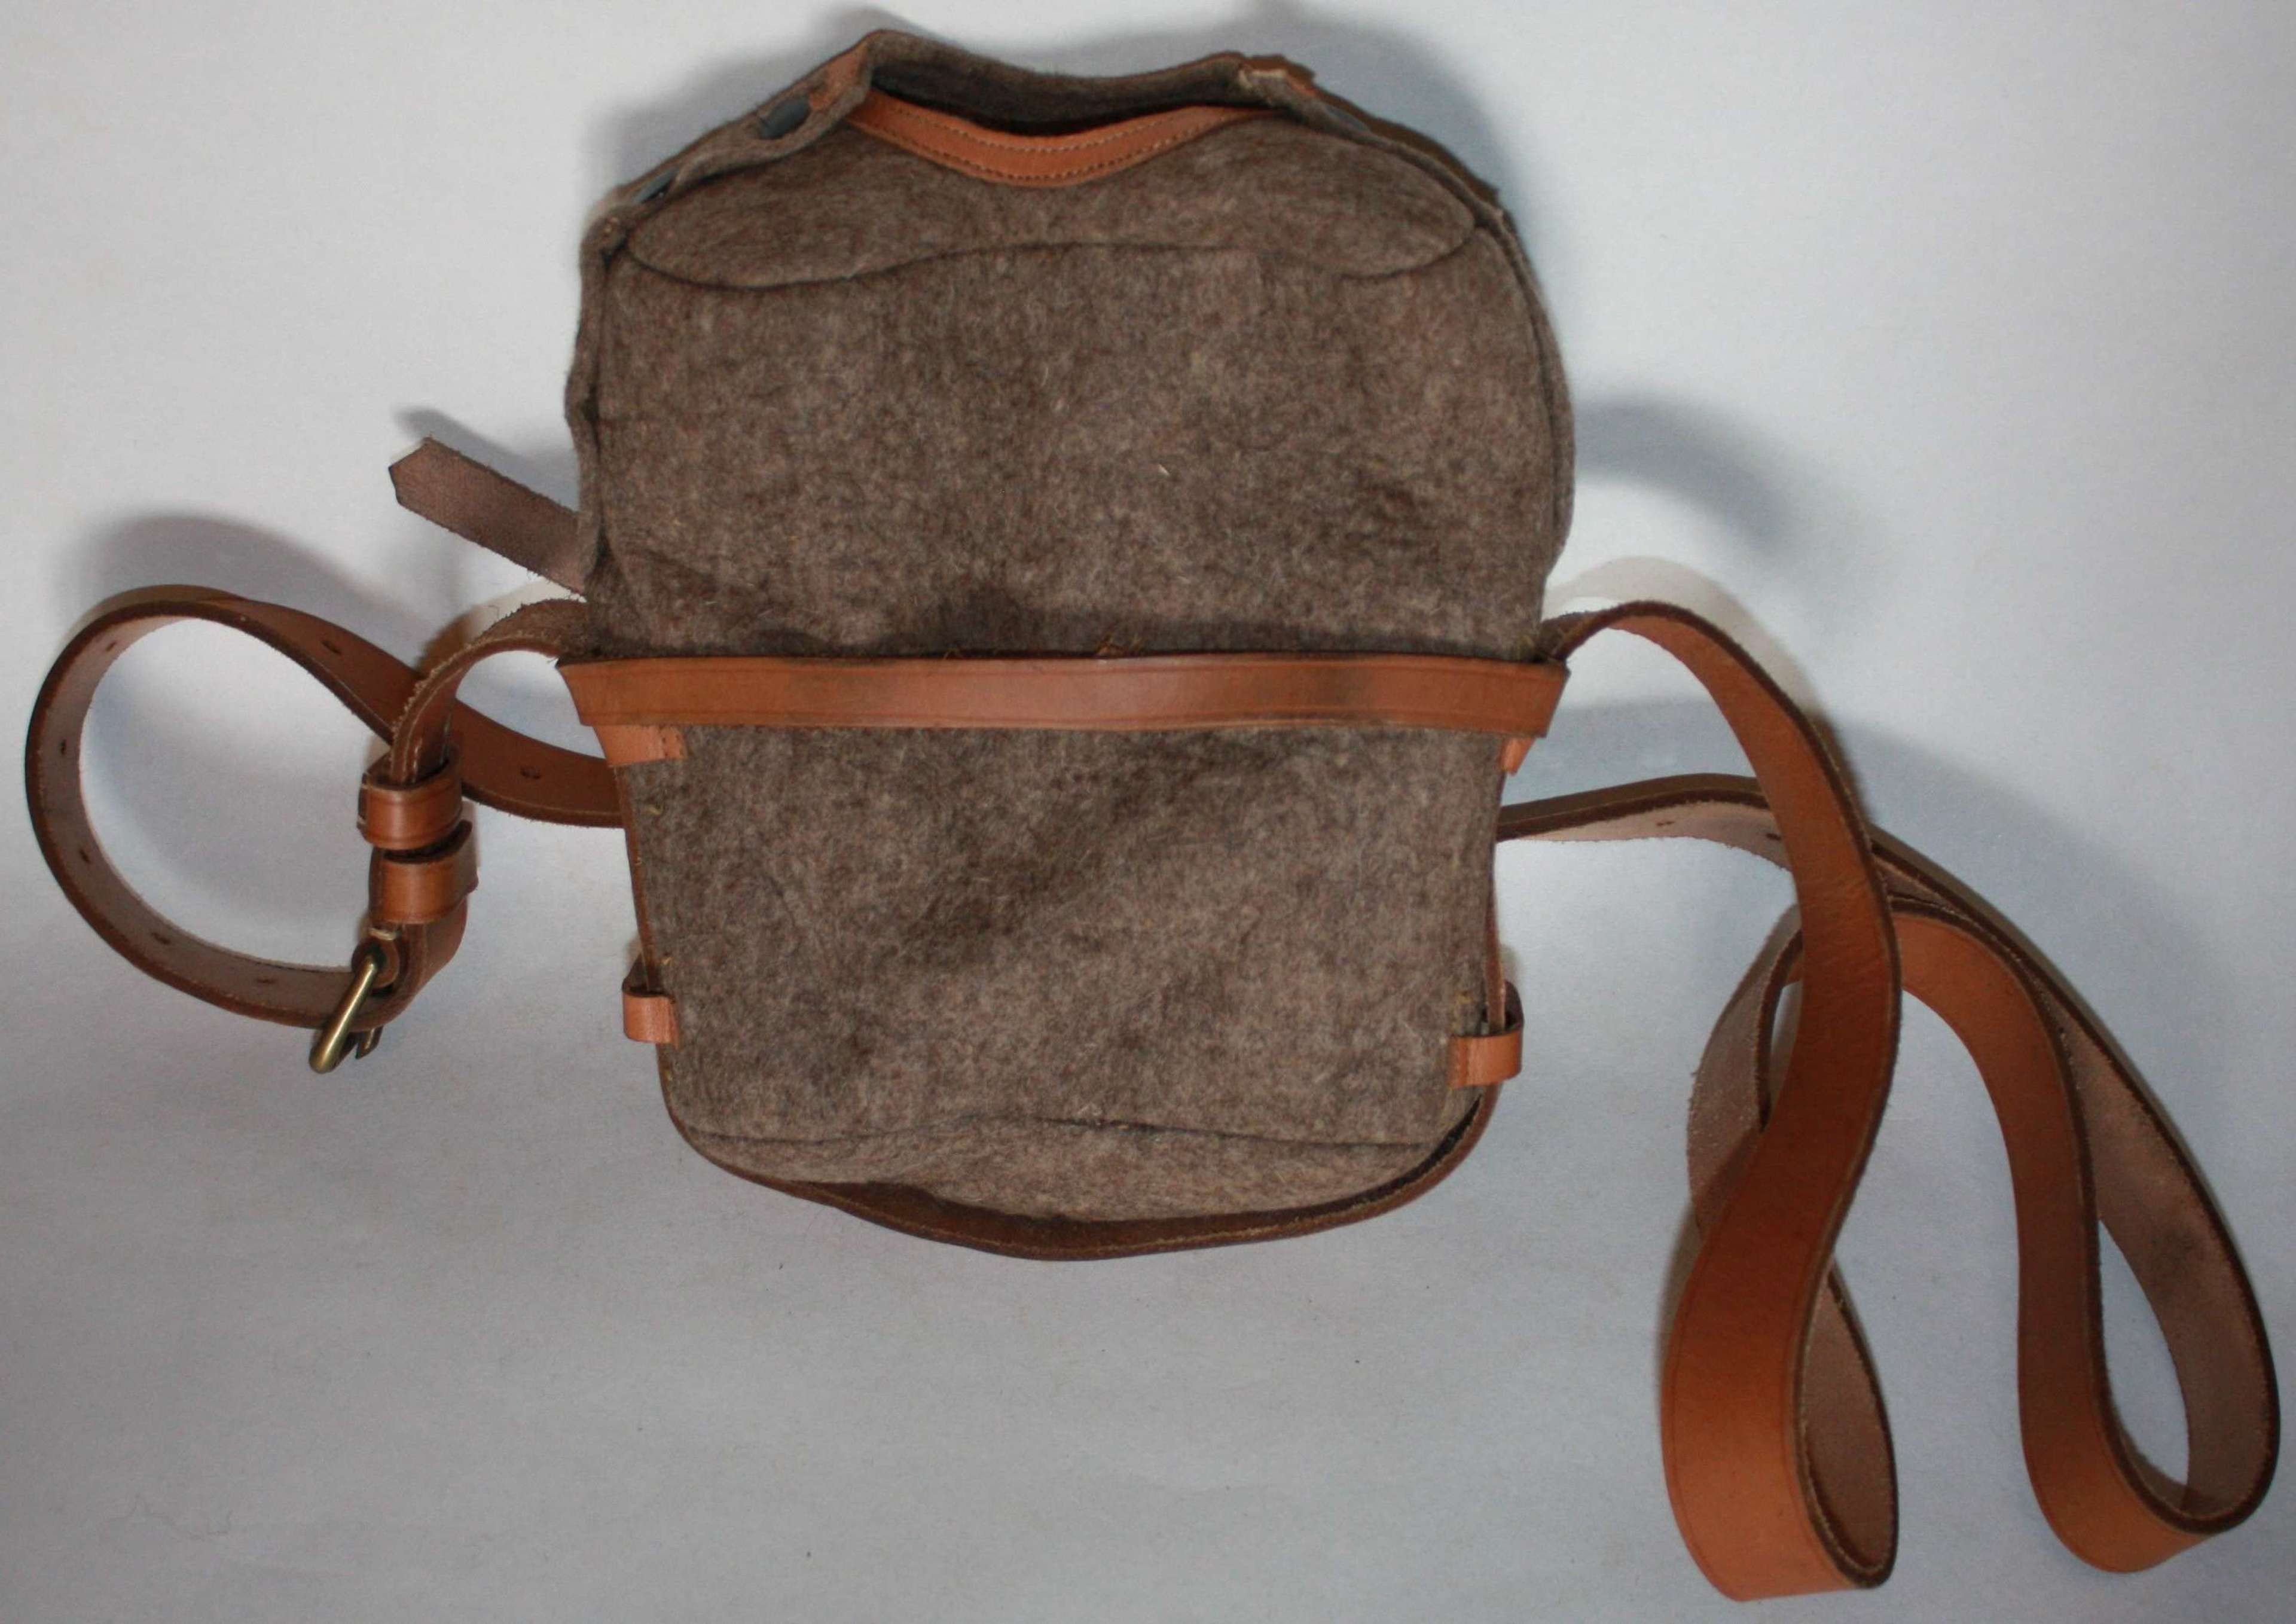 A GOOD MINT POST WWII LARGE SIZE WATER BOTTLE CARRIER AND FELT POUCH